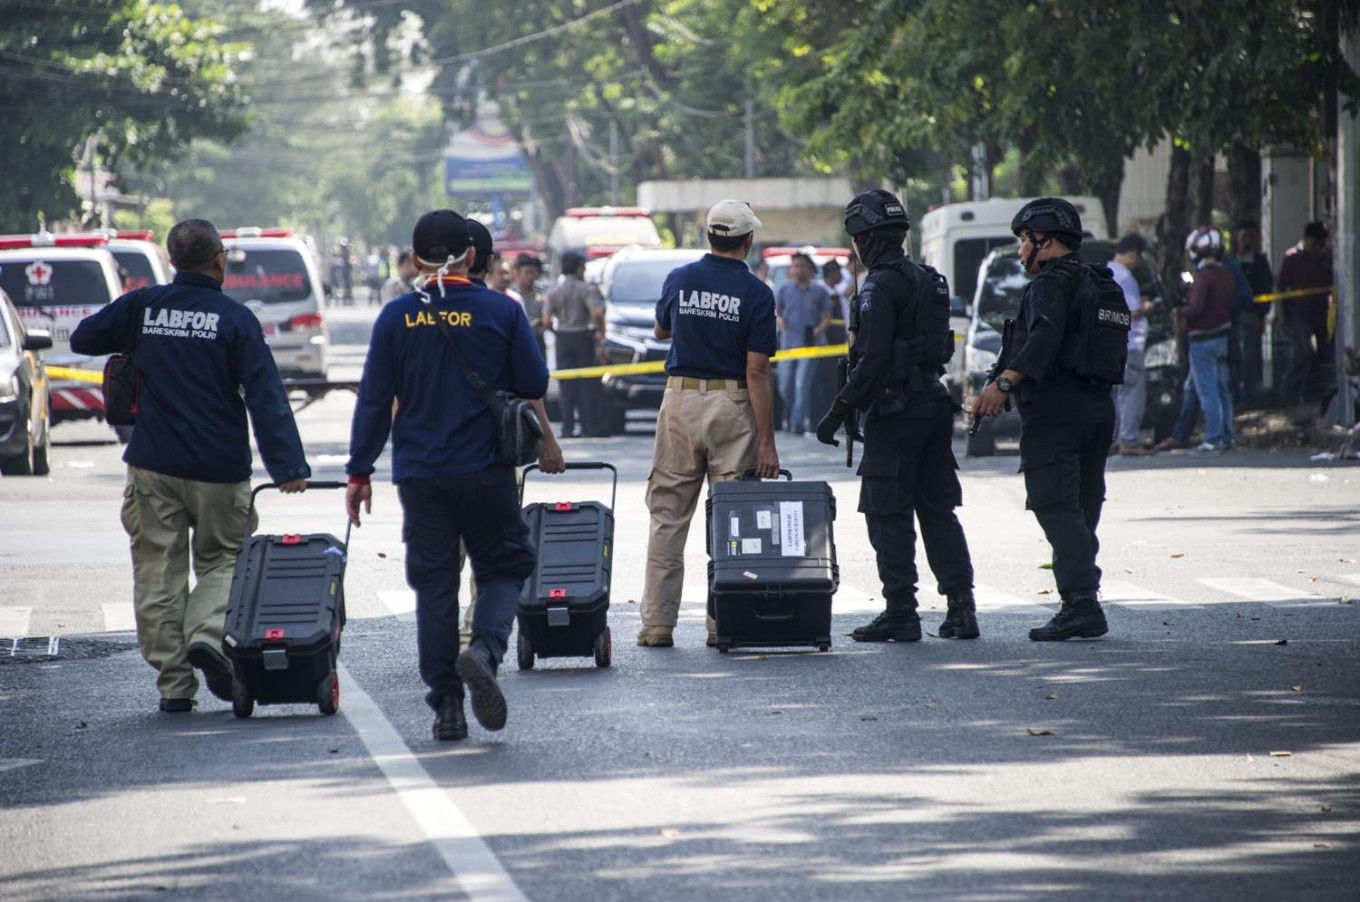 Police investigate 'IS' bomb threat at Pattimura University in Ambon